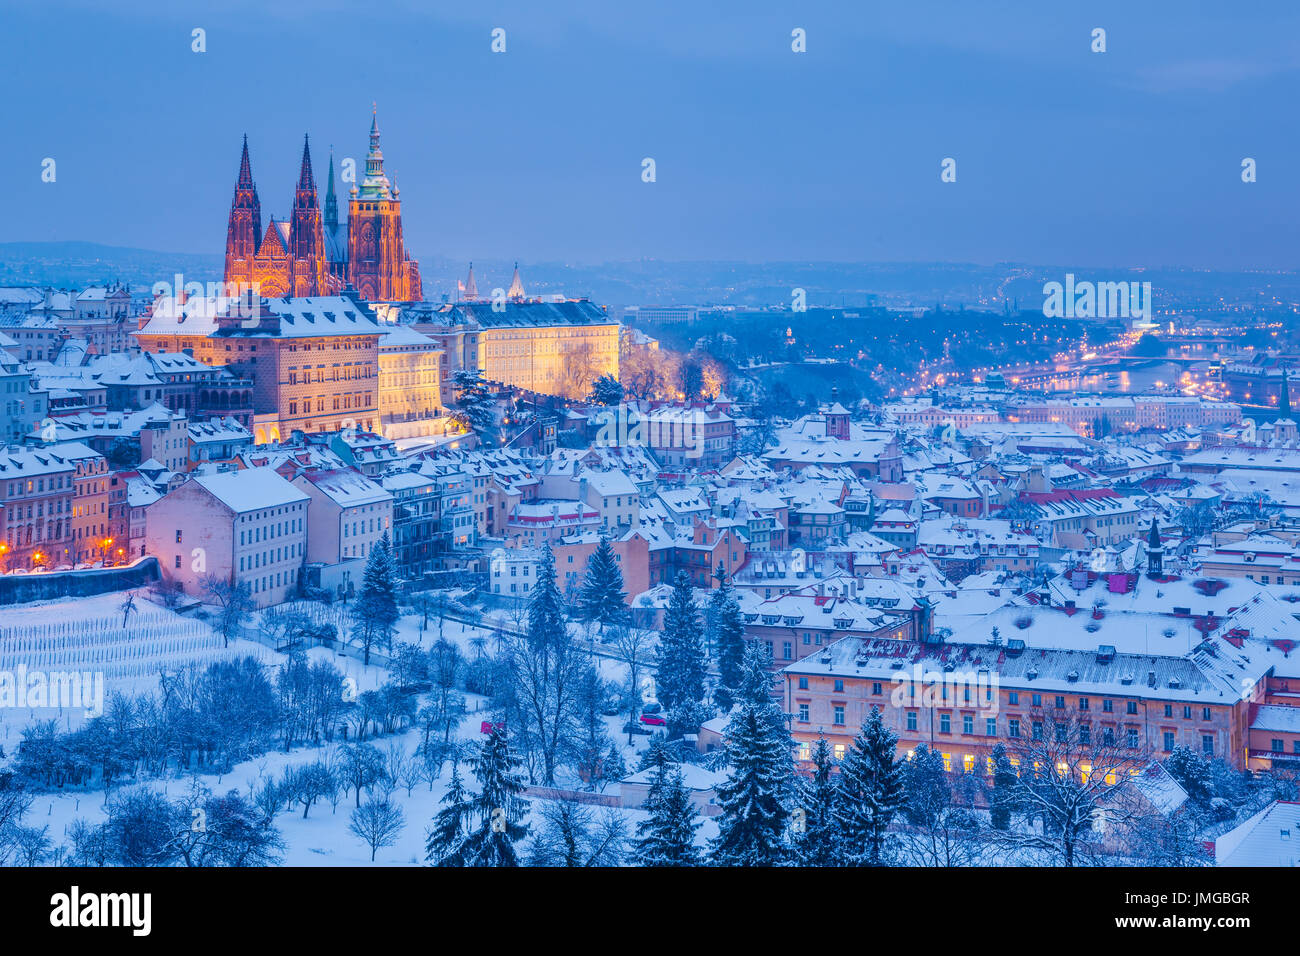 Europe, Czech Republic, Czechia, Prague, Praha, Historical Old Town, UNESCO, Prague Castle, Prazsky hrad, St. Vitus Stock Photo